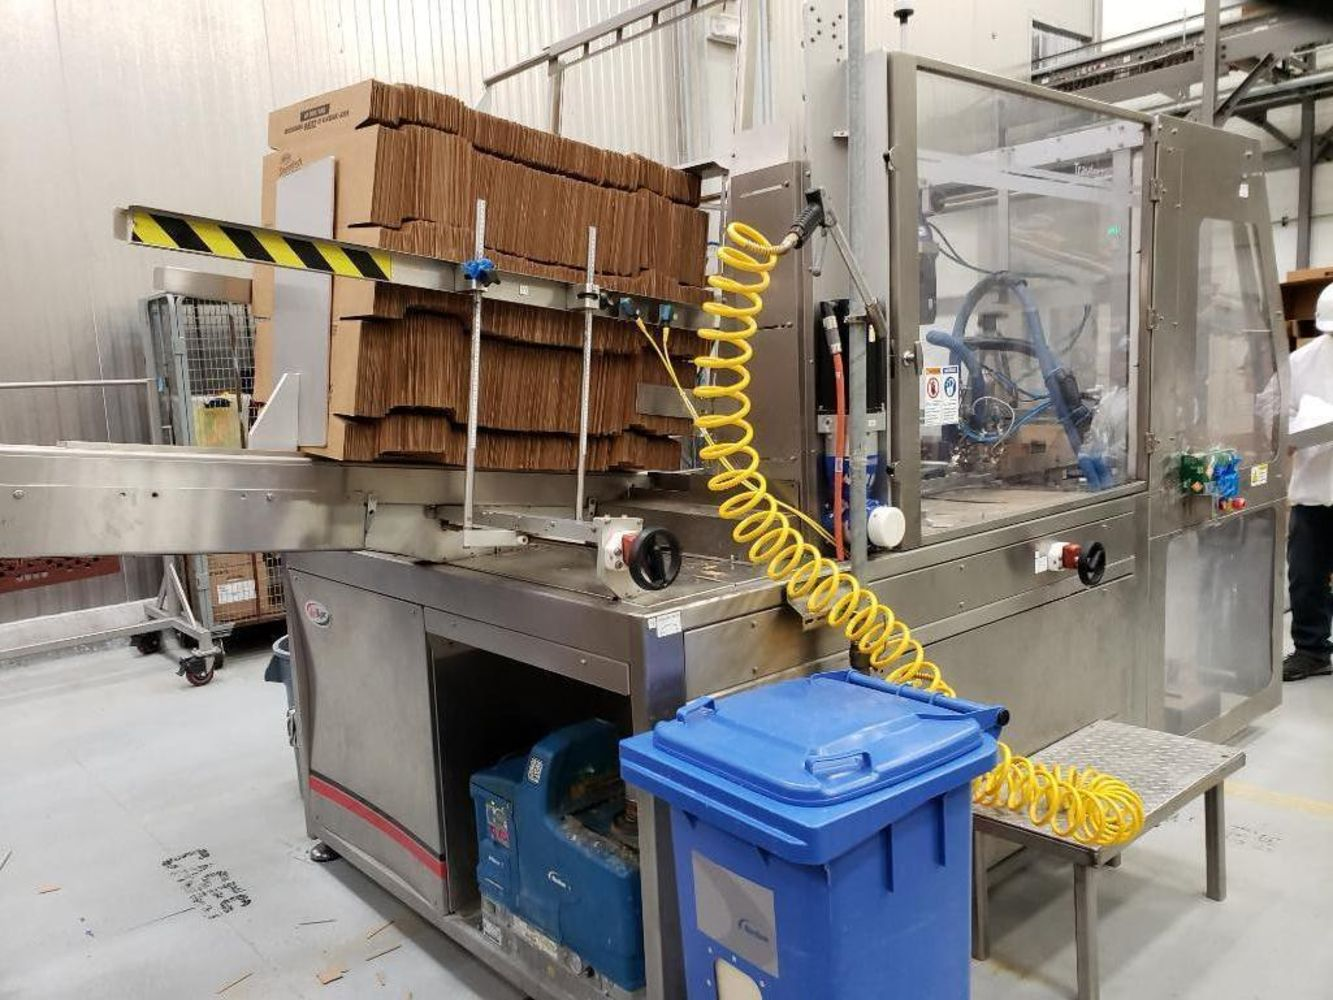 Conagra Multi-Location online auction - 6 locations of food manufacturing and packaging equipment